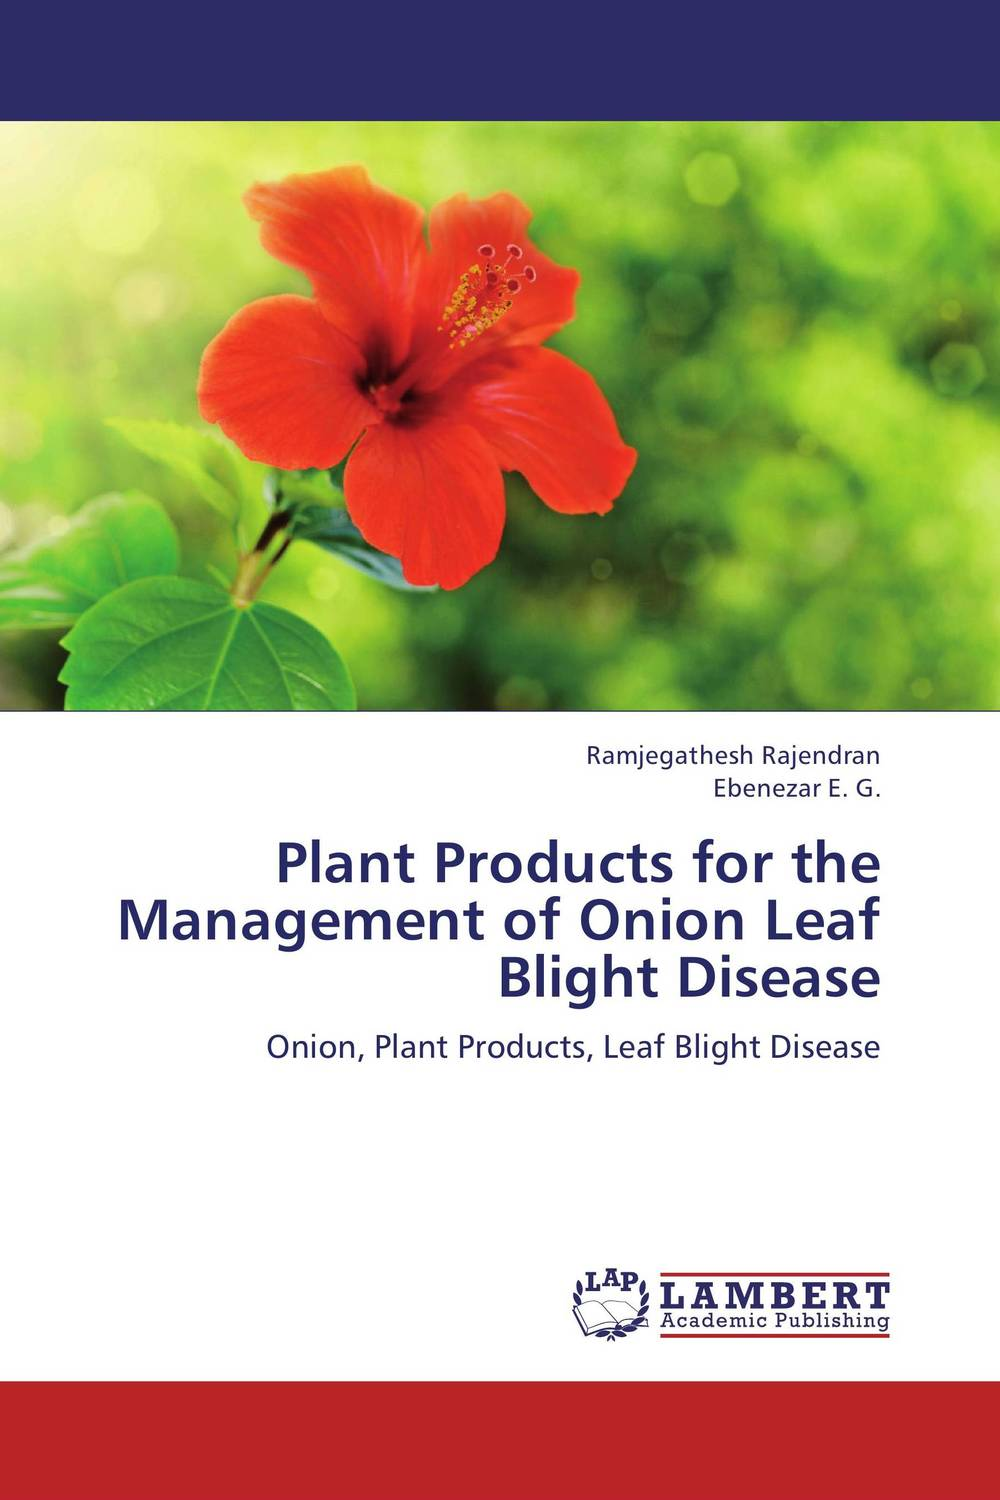 цена на Plant Products for the Management of Onion Leaf Blight Disease